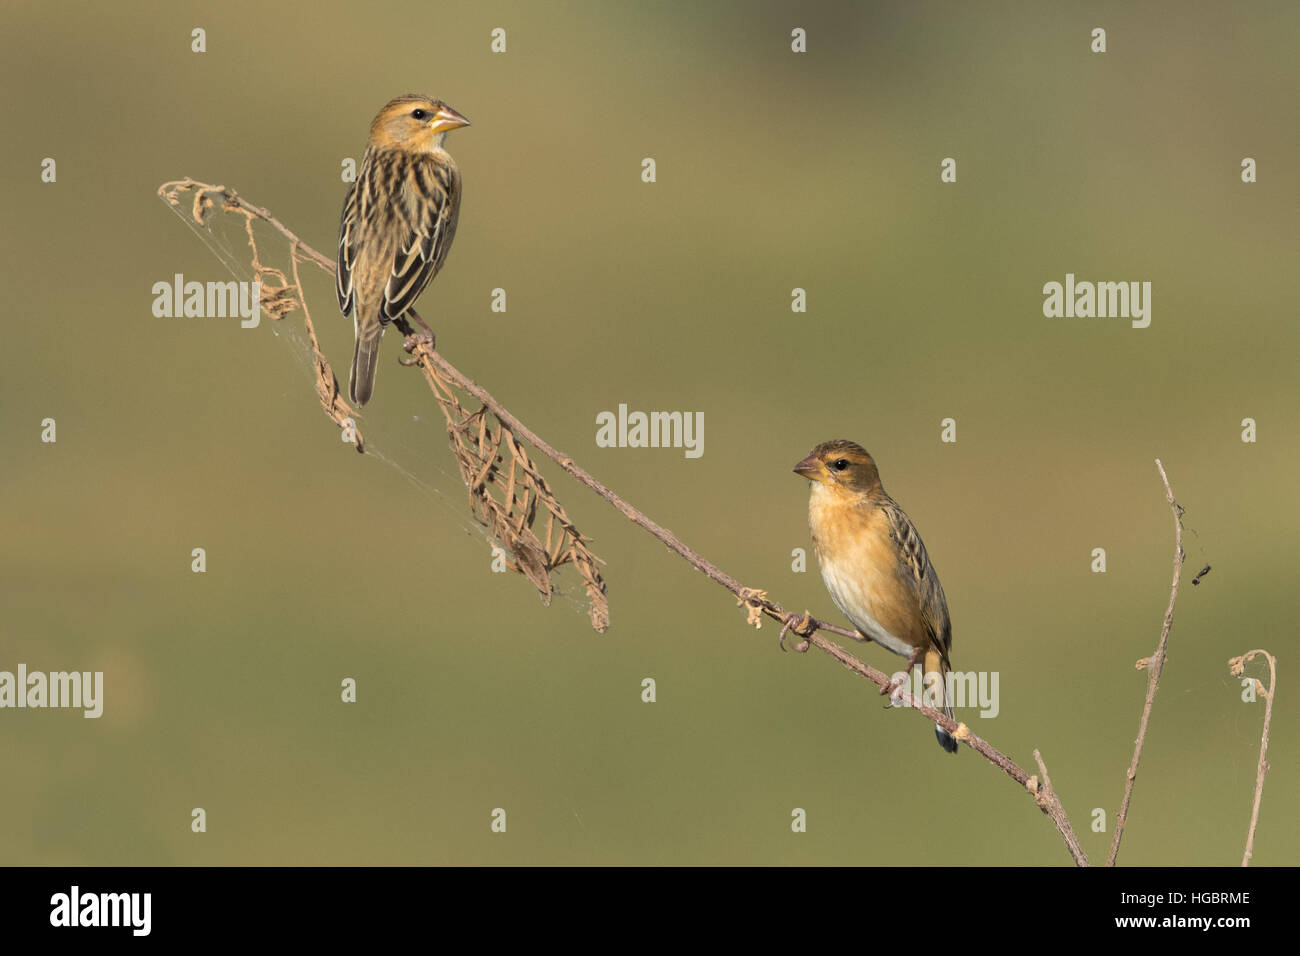 The Asian golden weaver (Ploceus hypoxanthus) is a species of bird in the Ploceidae family. - Stock Image